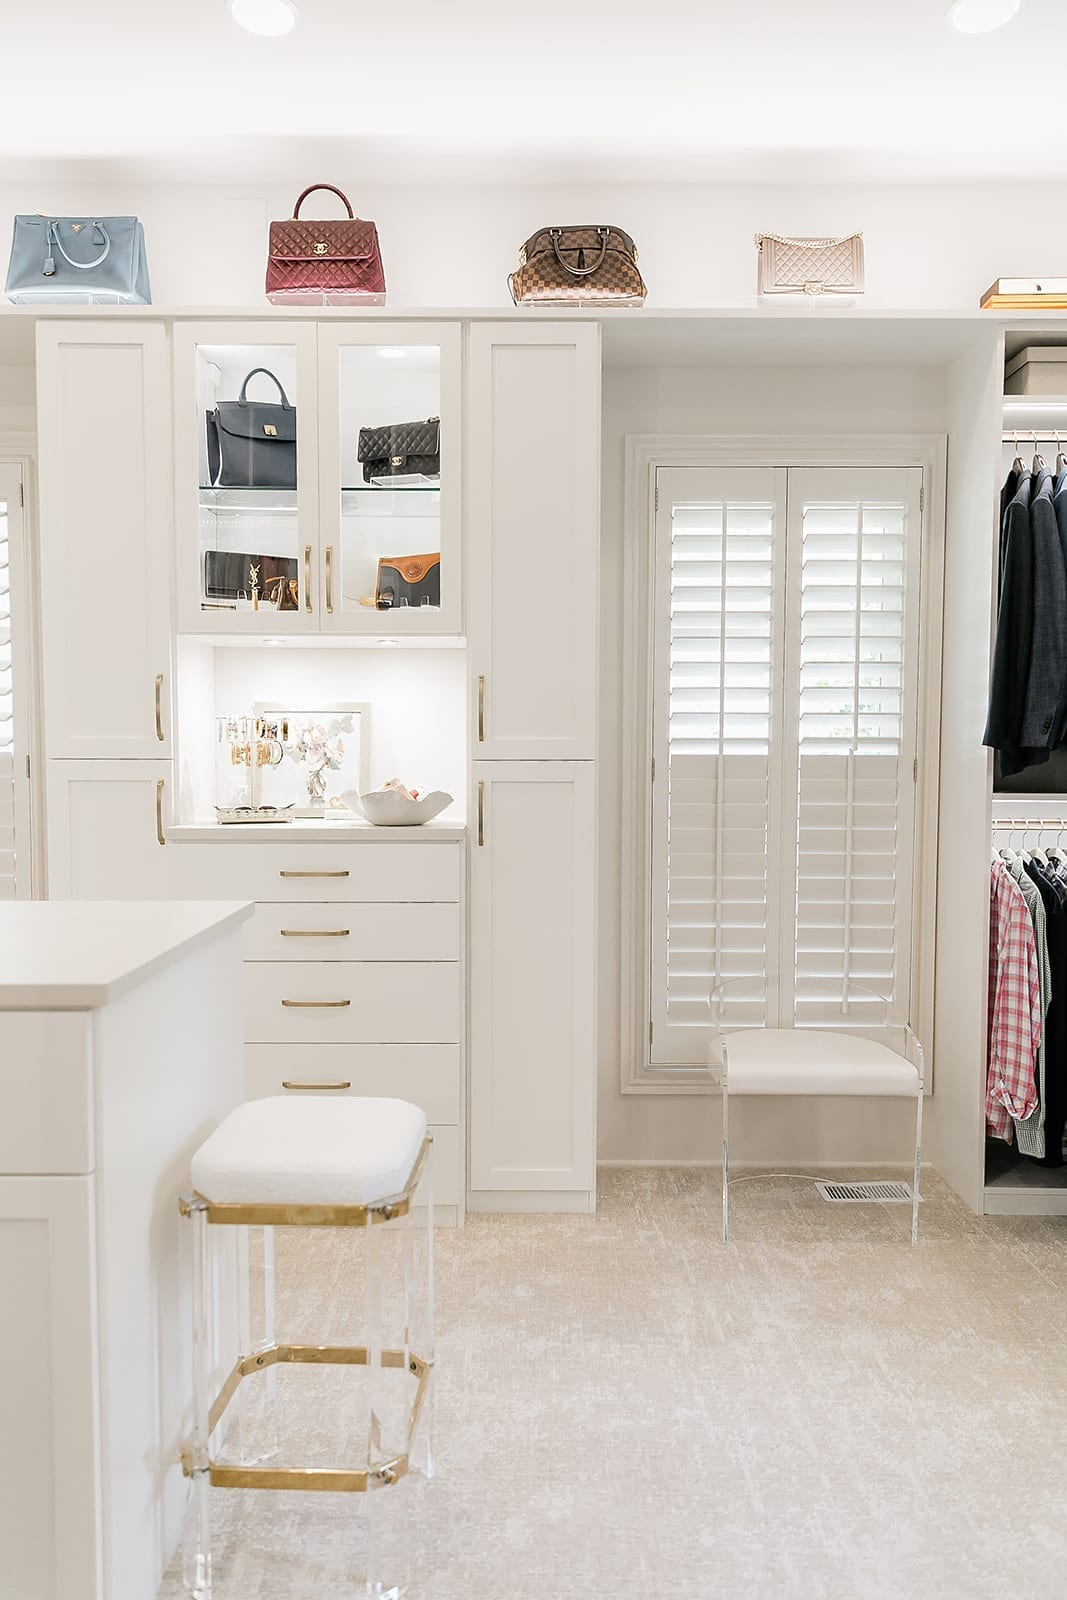 How to make your closet pretty. Display handbags in your closet with specialty closet lighting.